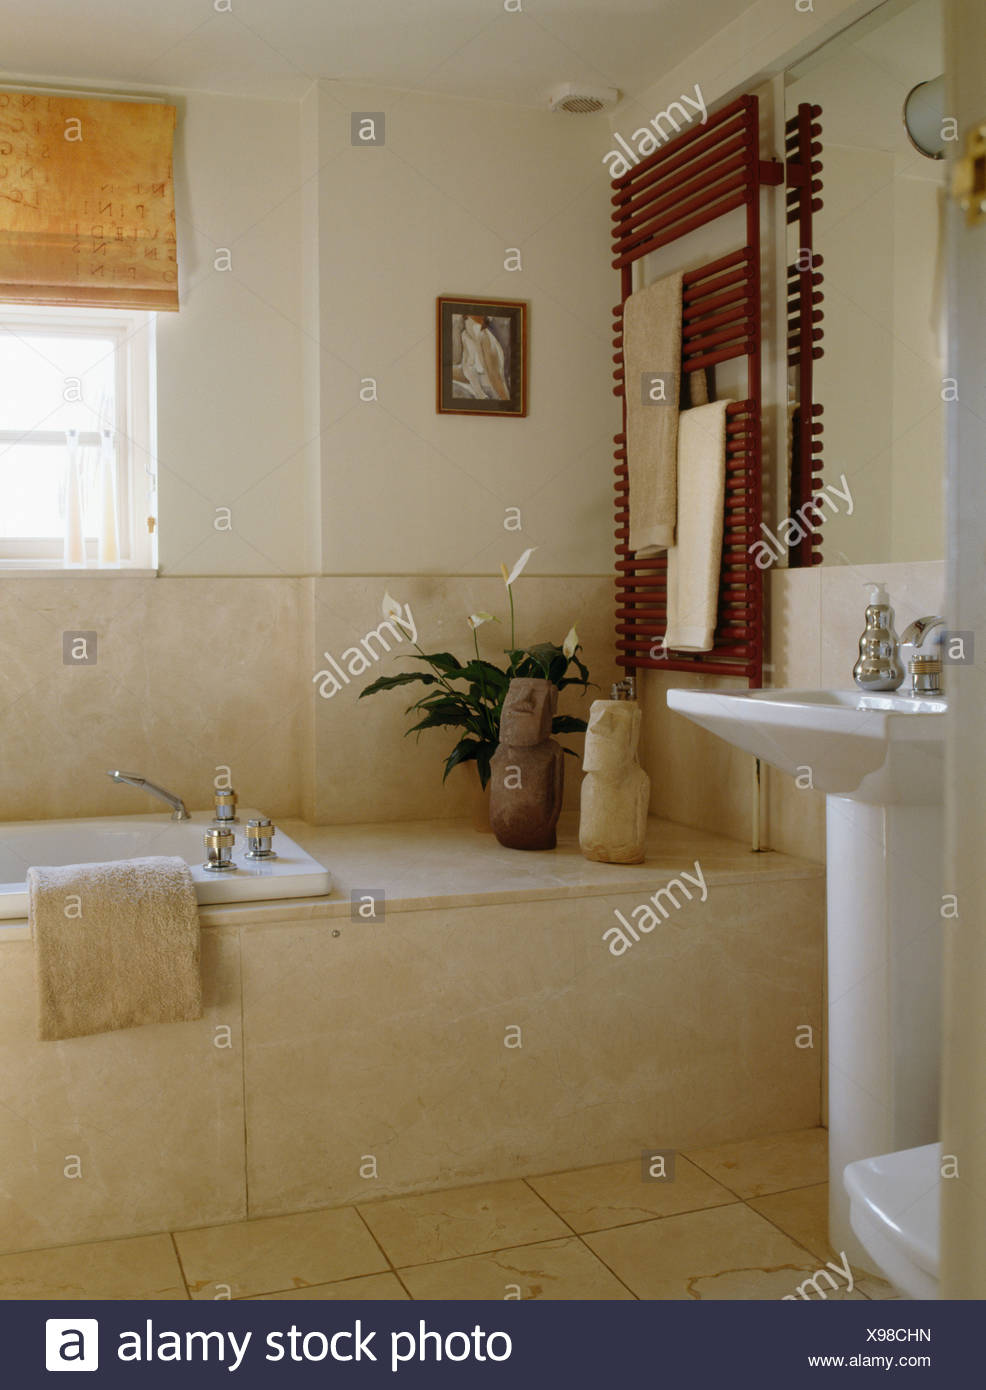 Marble Tiled Bath Panel And Wall Tiles In Cream Bathroom With Wall Mounted  Radiator On Wall Above Bath